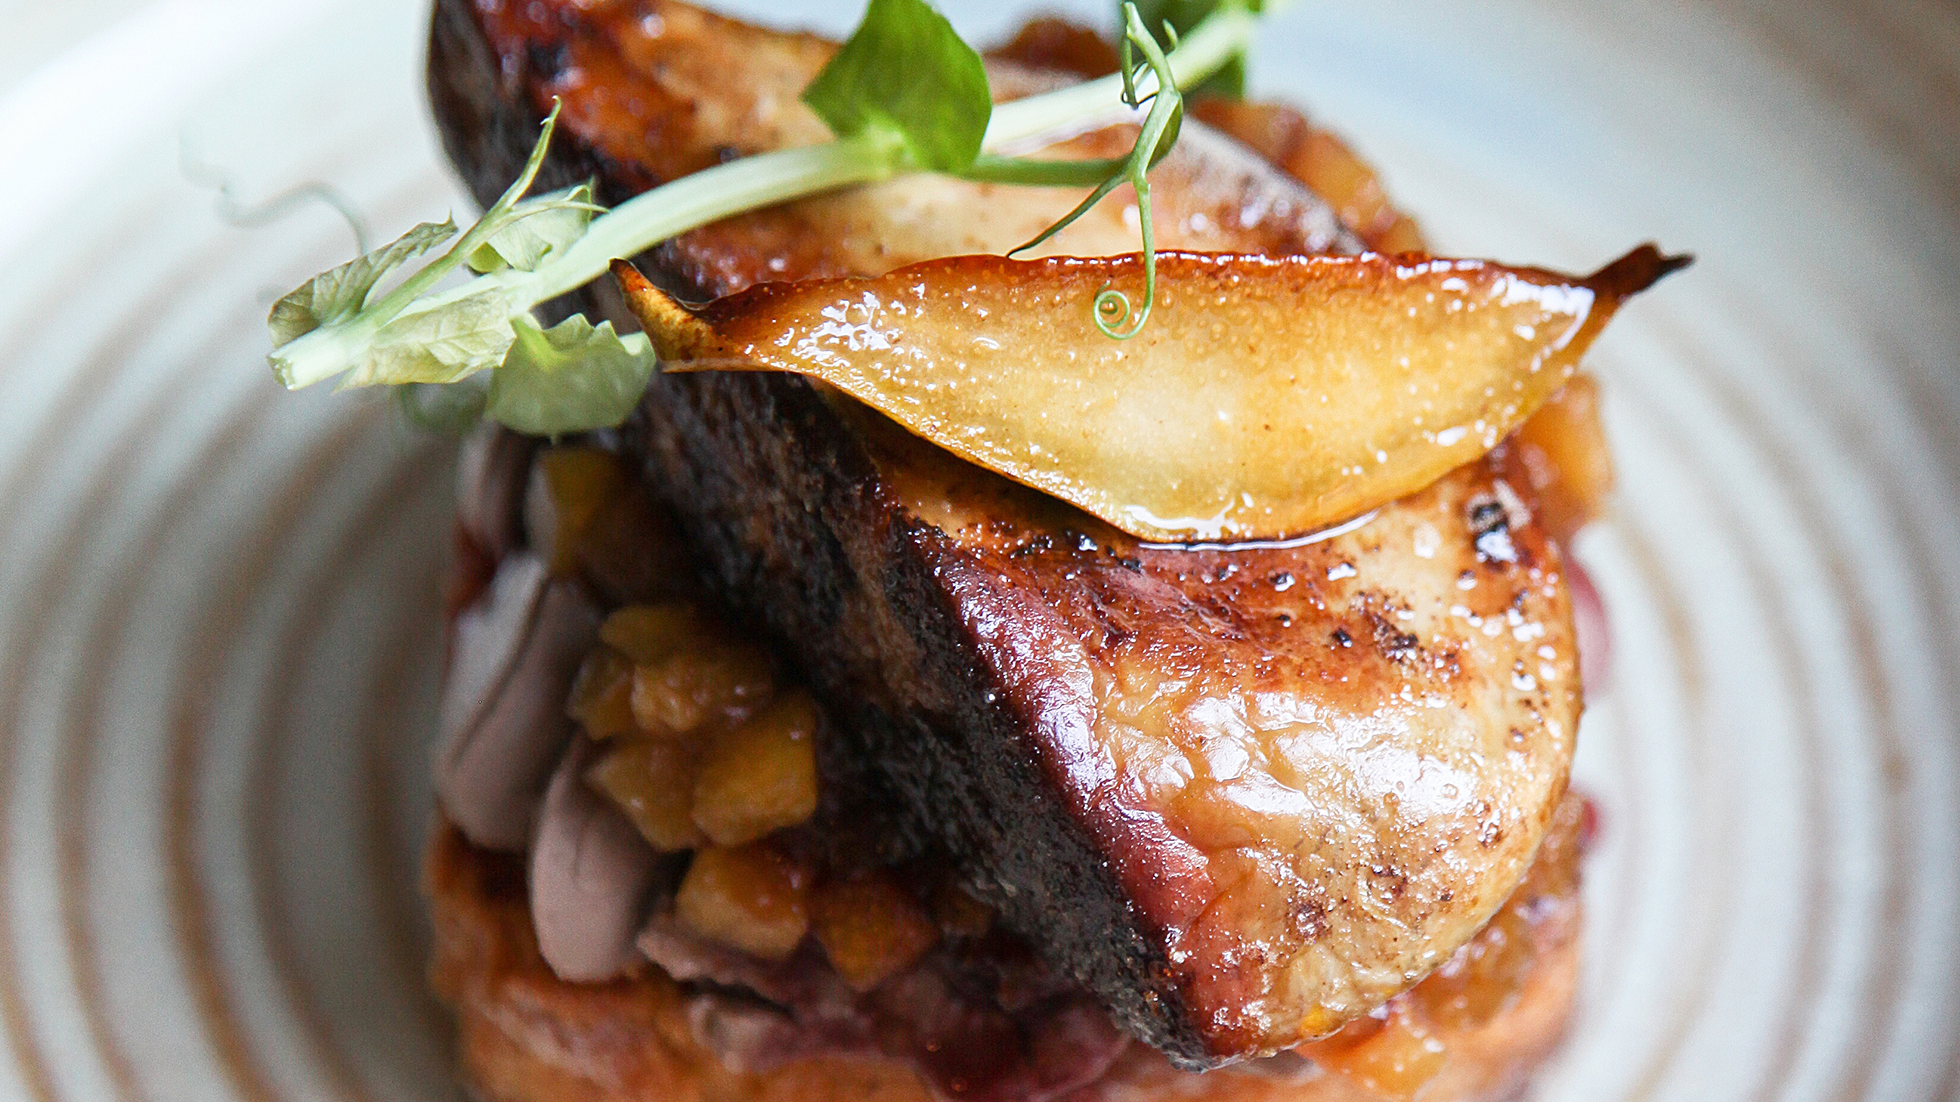 Pan-fried foie gras on toast and pear chutney